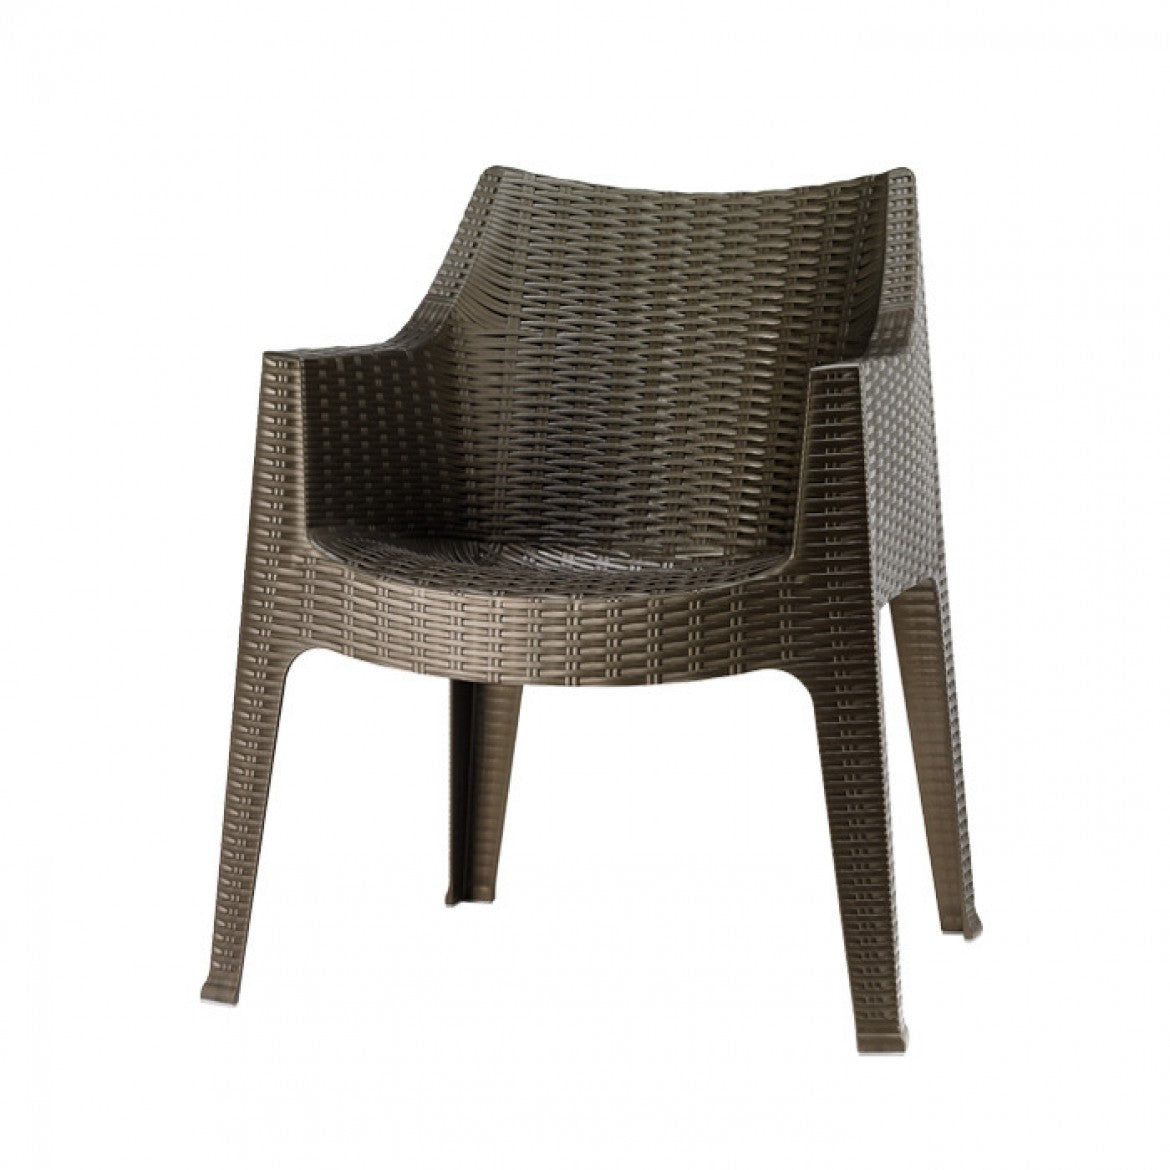 MAXIMA CHAIR - Interra Designs PO